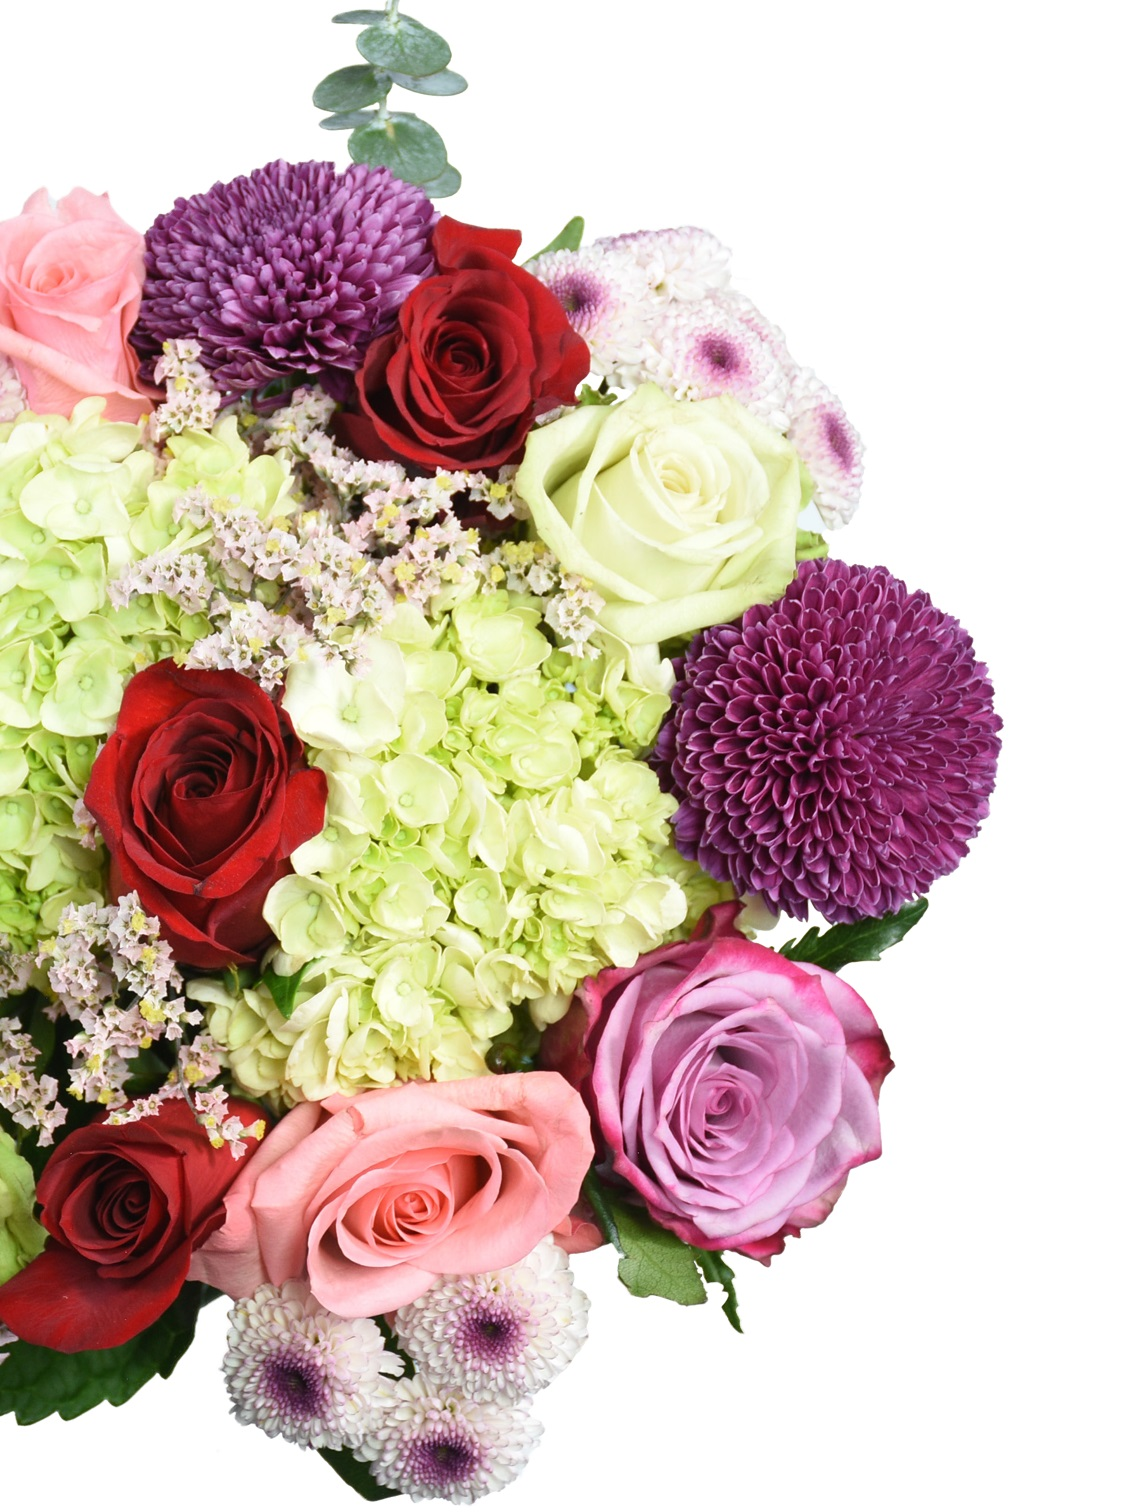 Pre-made Bouquets Available on DV Grower Direct